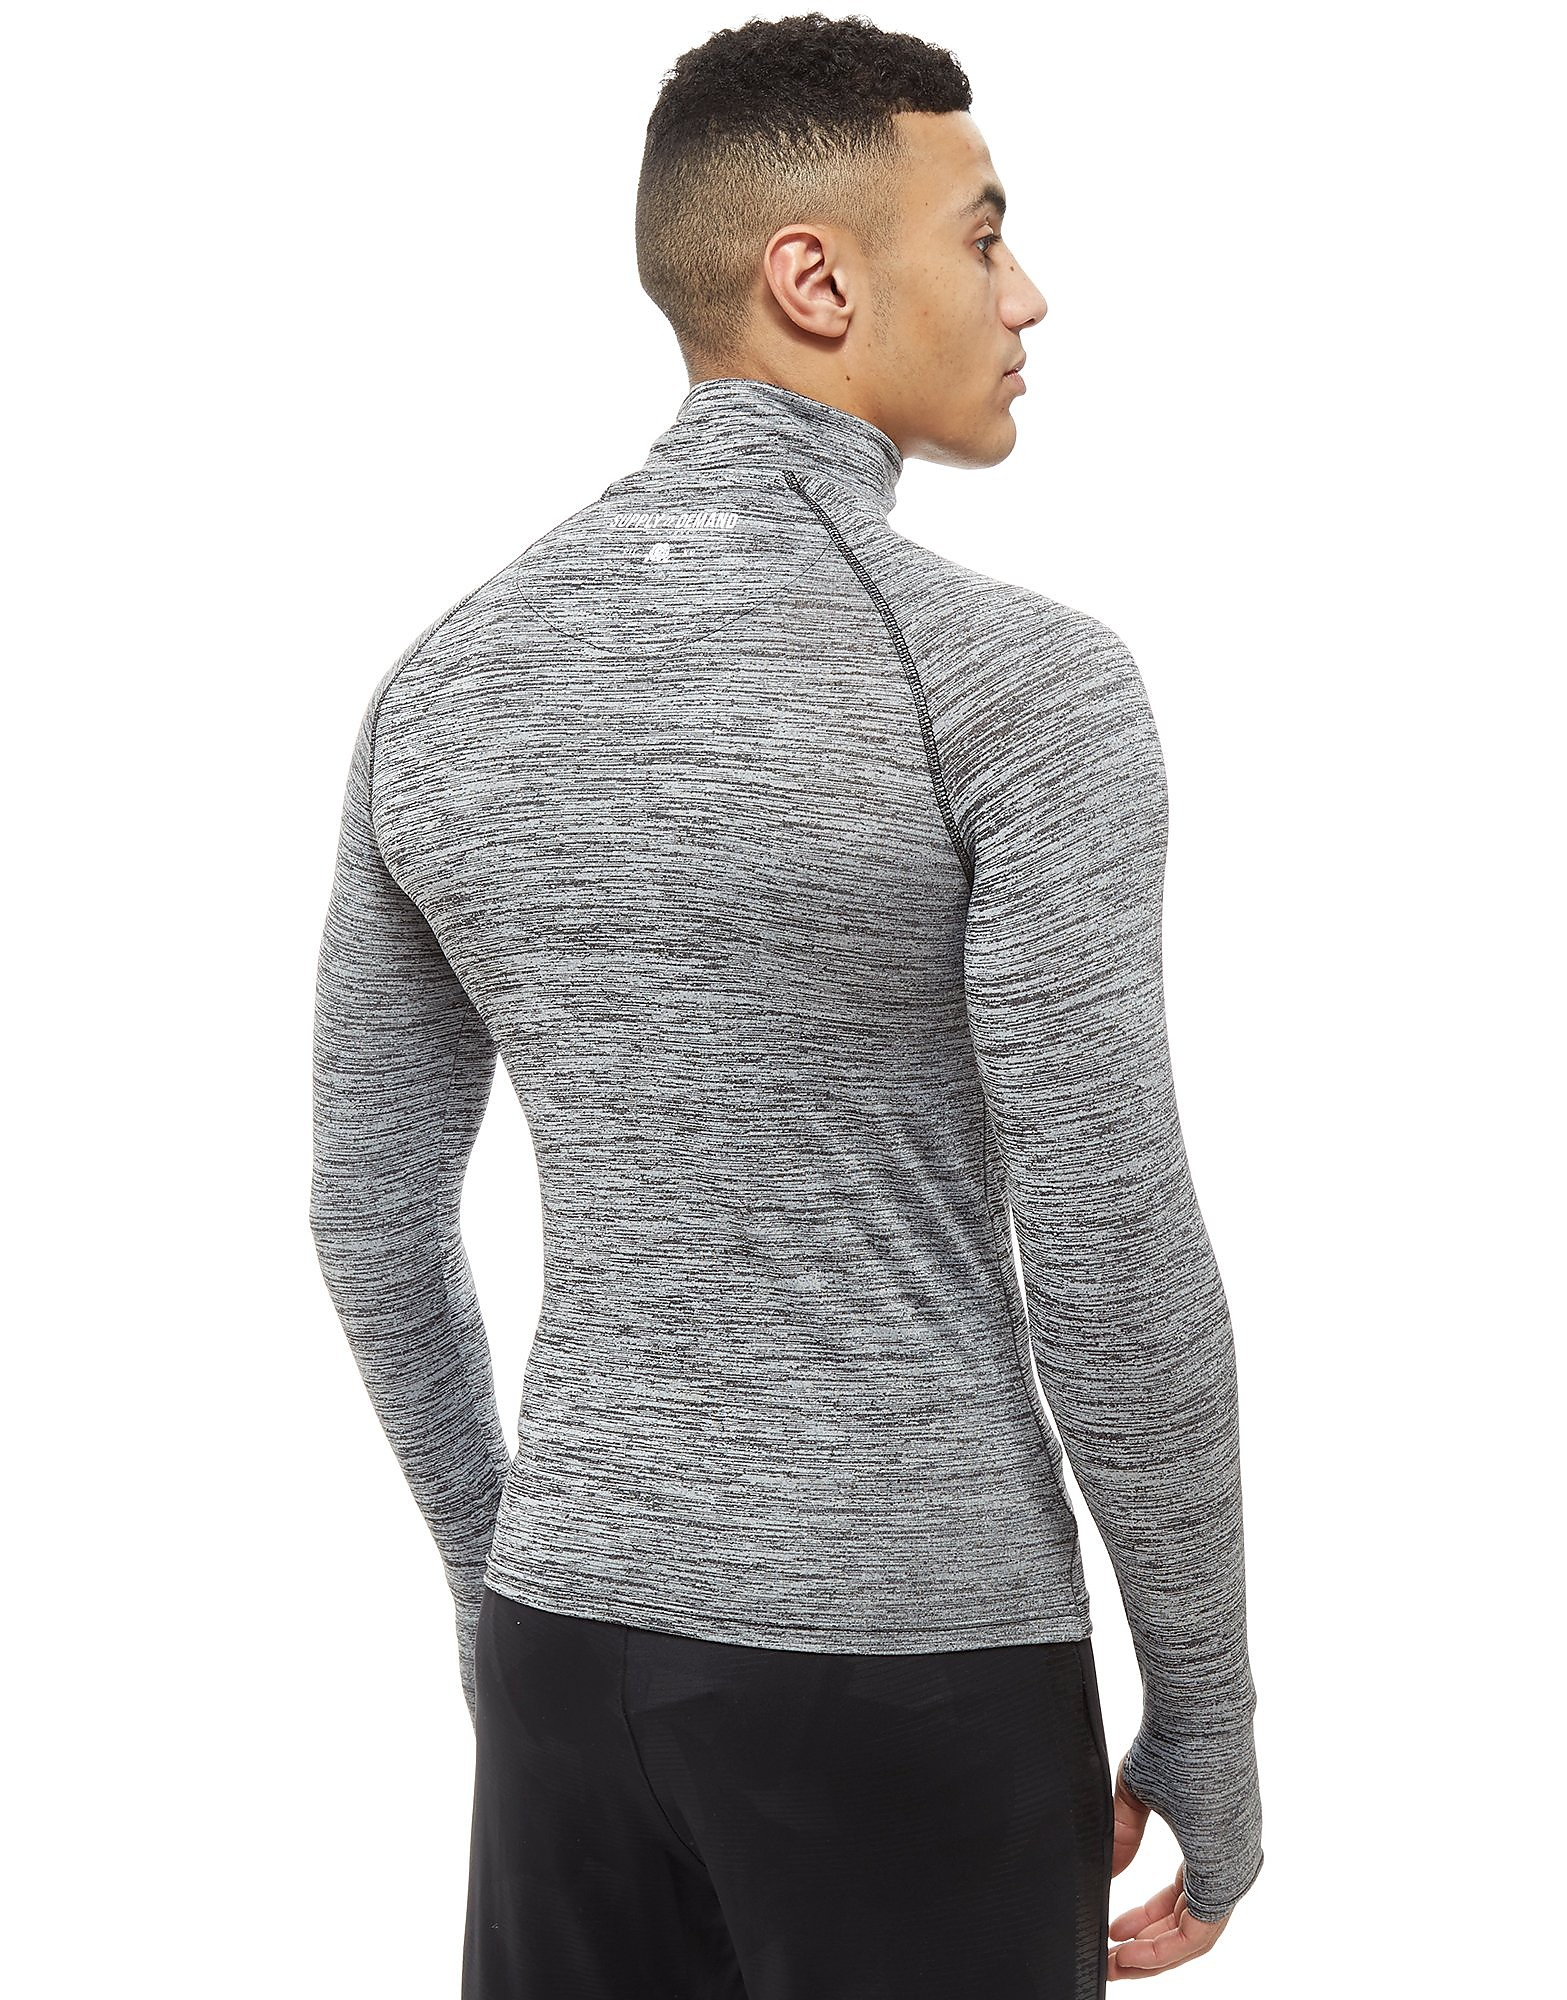 Supply & Demand Body Long Sleeve 1/4 Zip Top